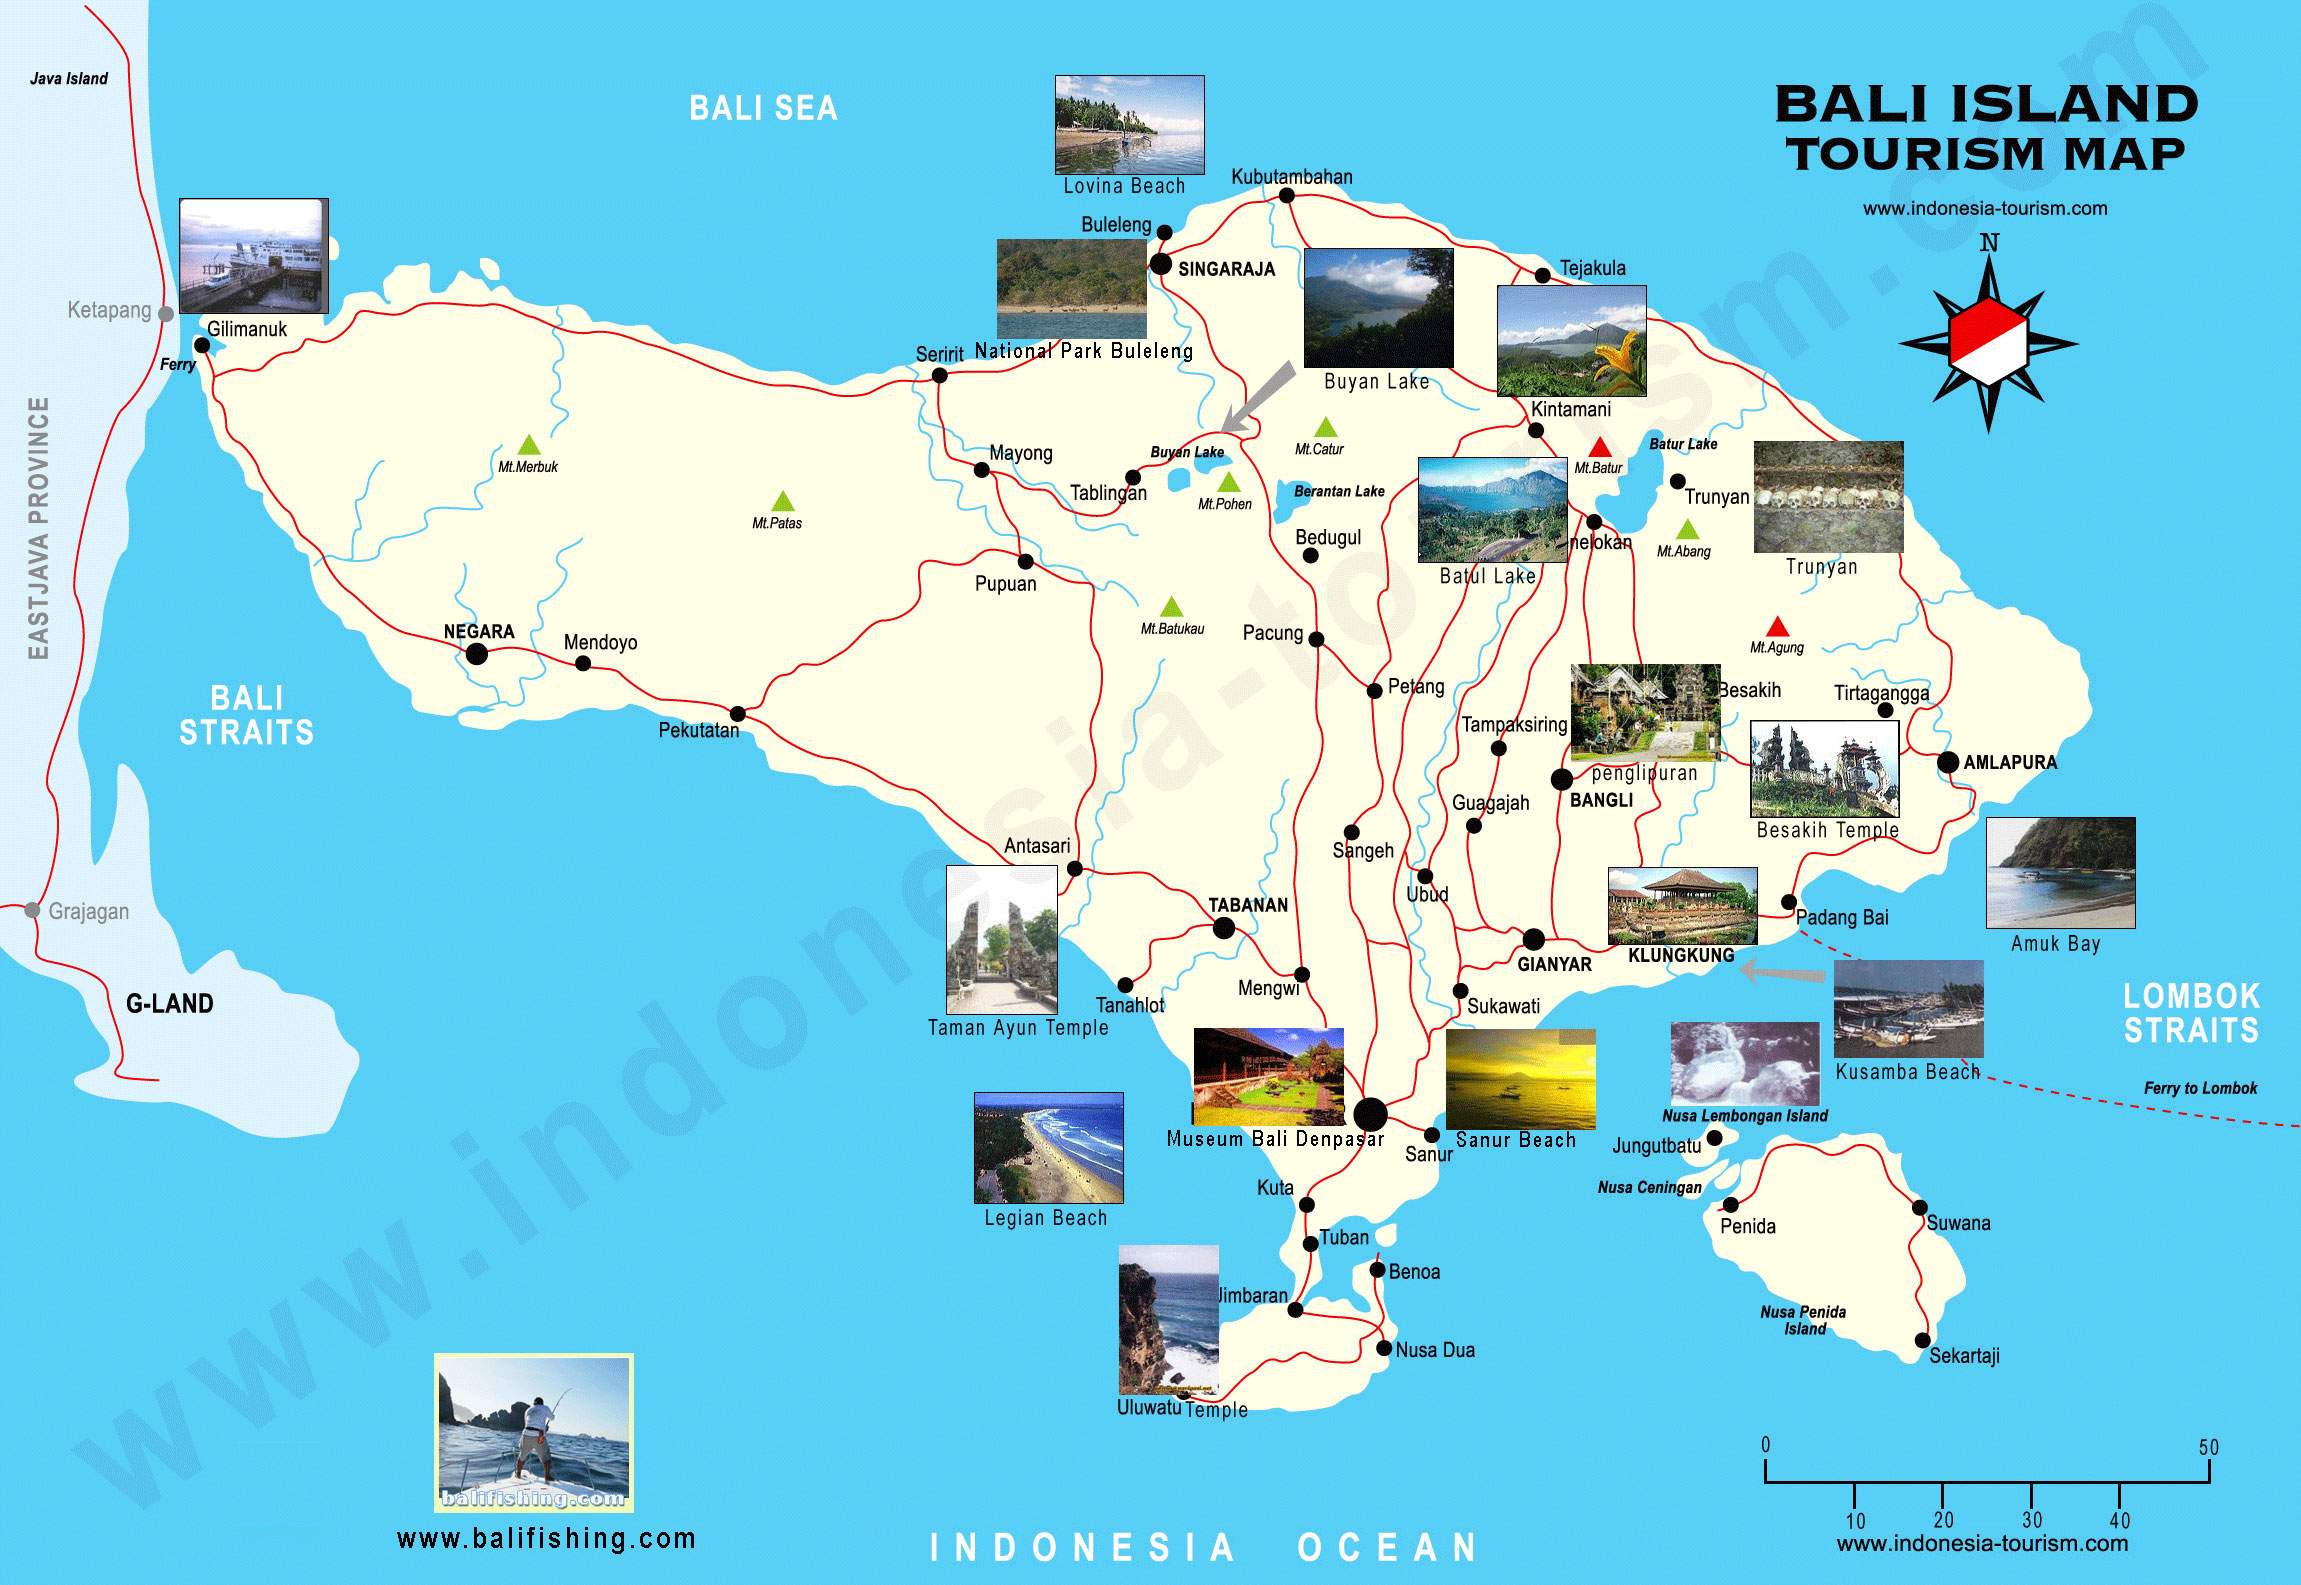 mapa de bali Large Bali Maps for Free Download and Print | High Resolution and  mapa de bali